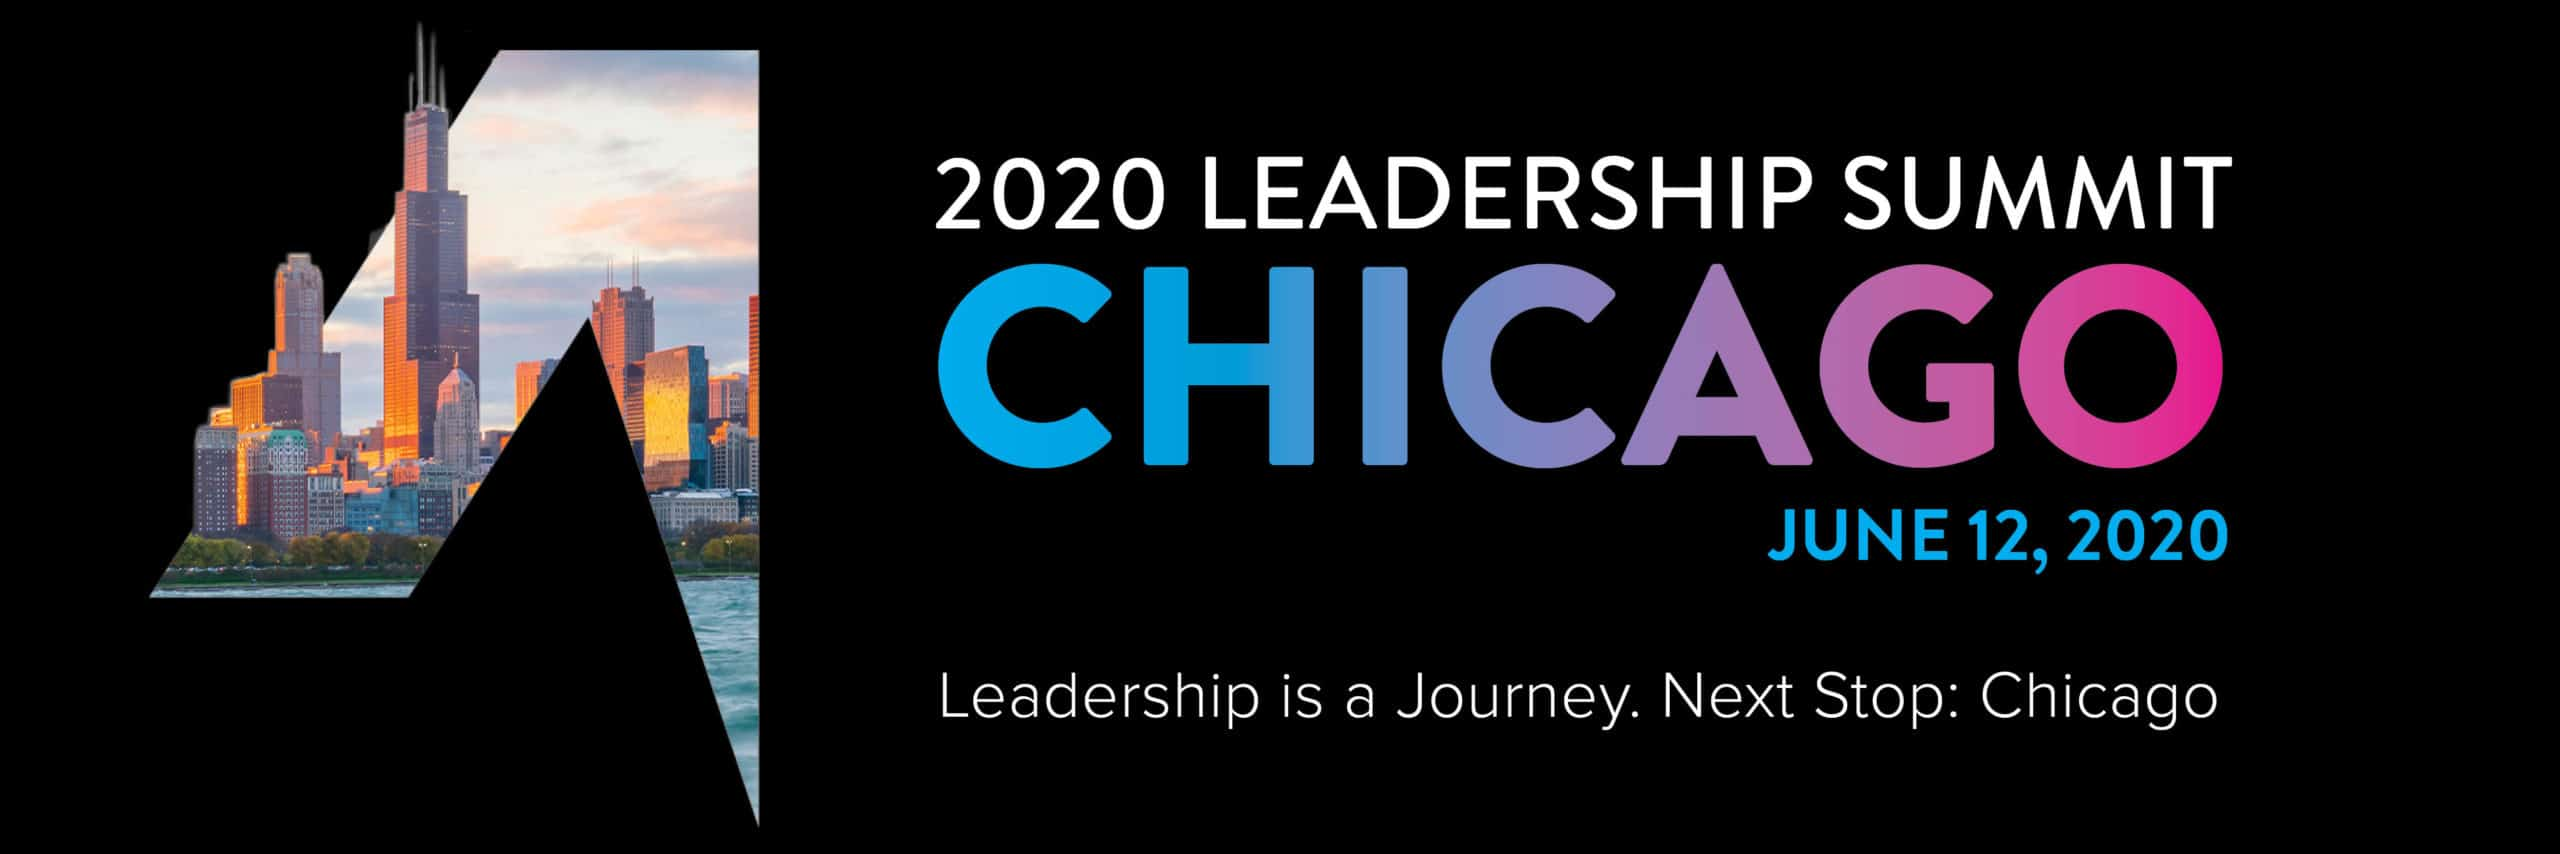 2020 Leadership Summit in Chicago